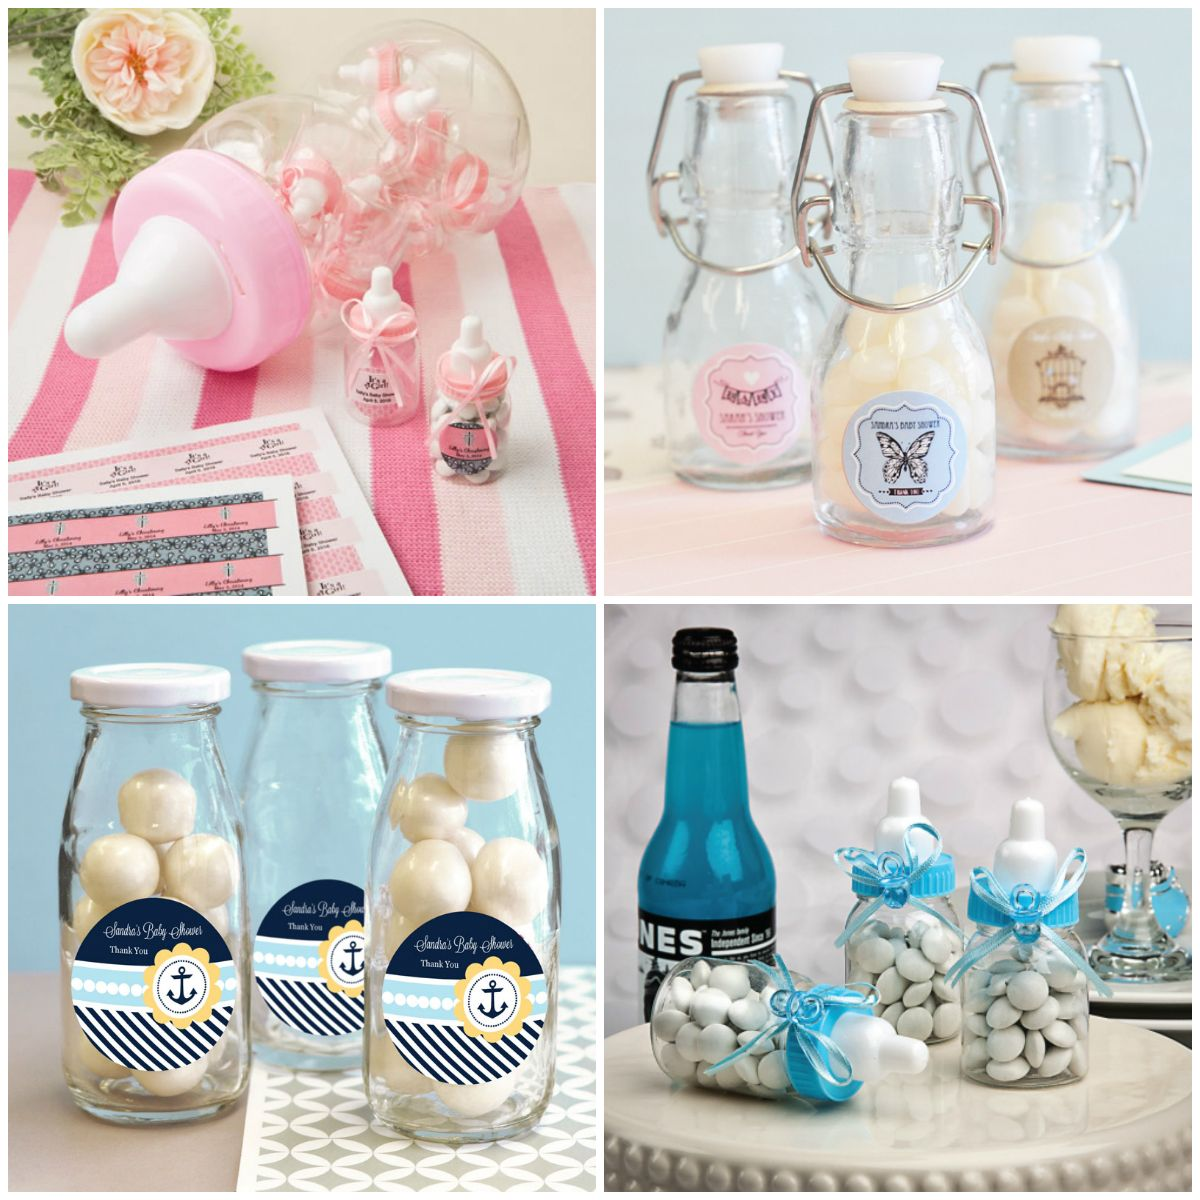 Baby Bottle Party Favors for Baby Shower from HotRef